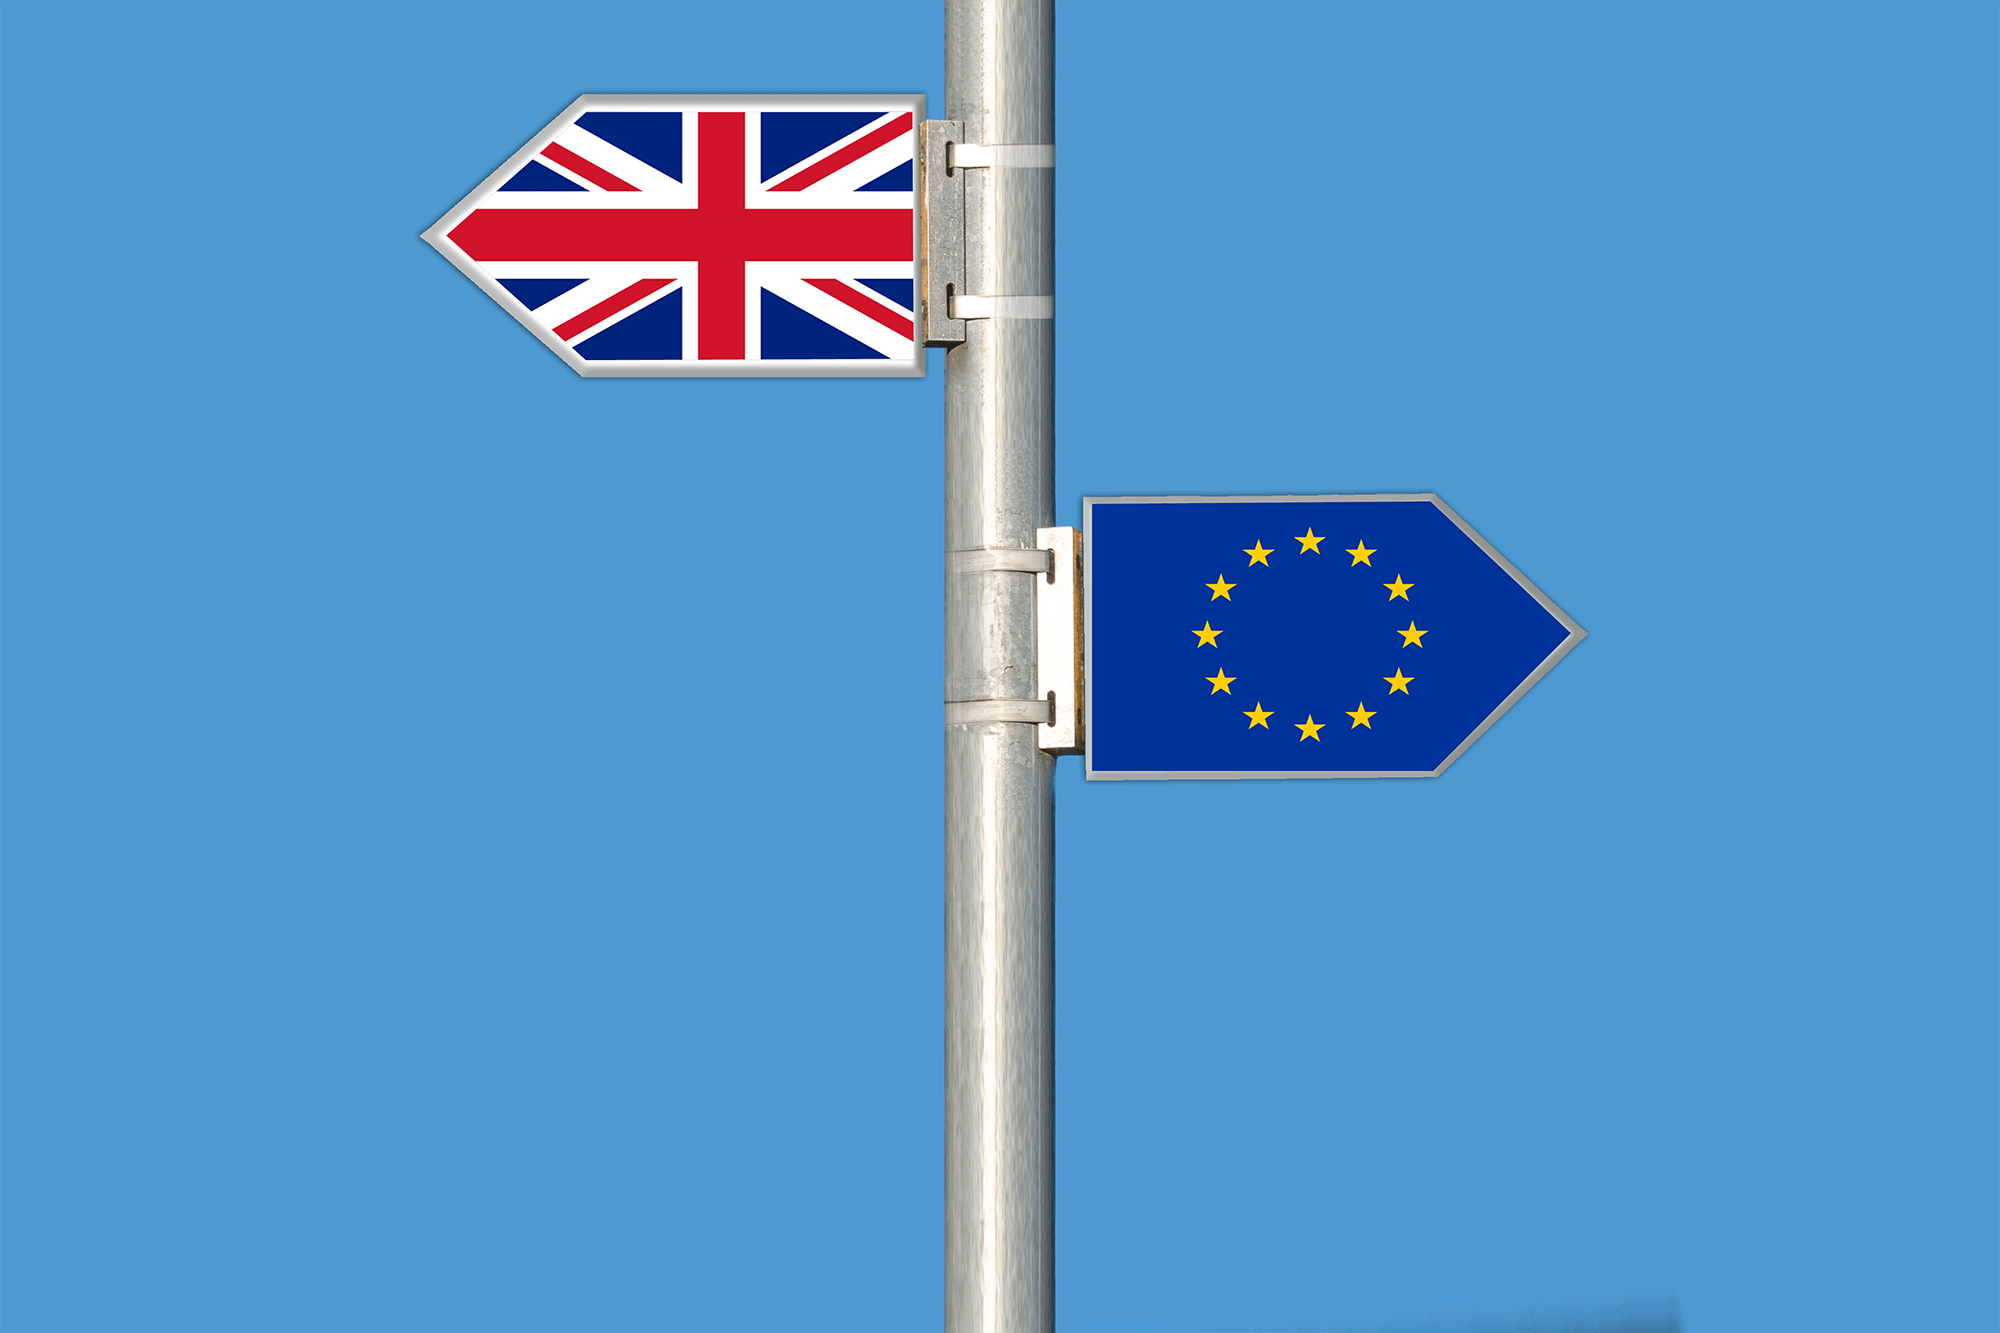 BREXIT ON UCITS FUNDS